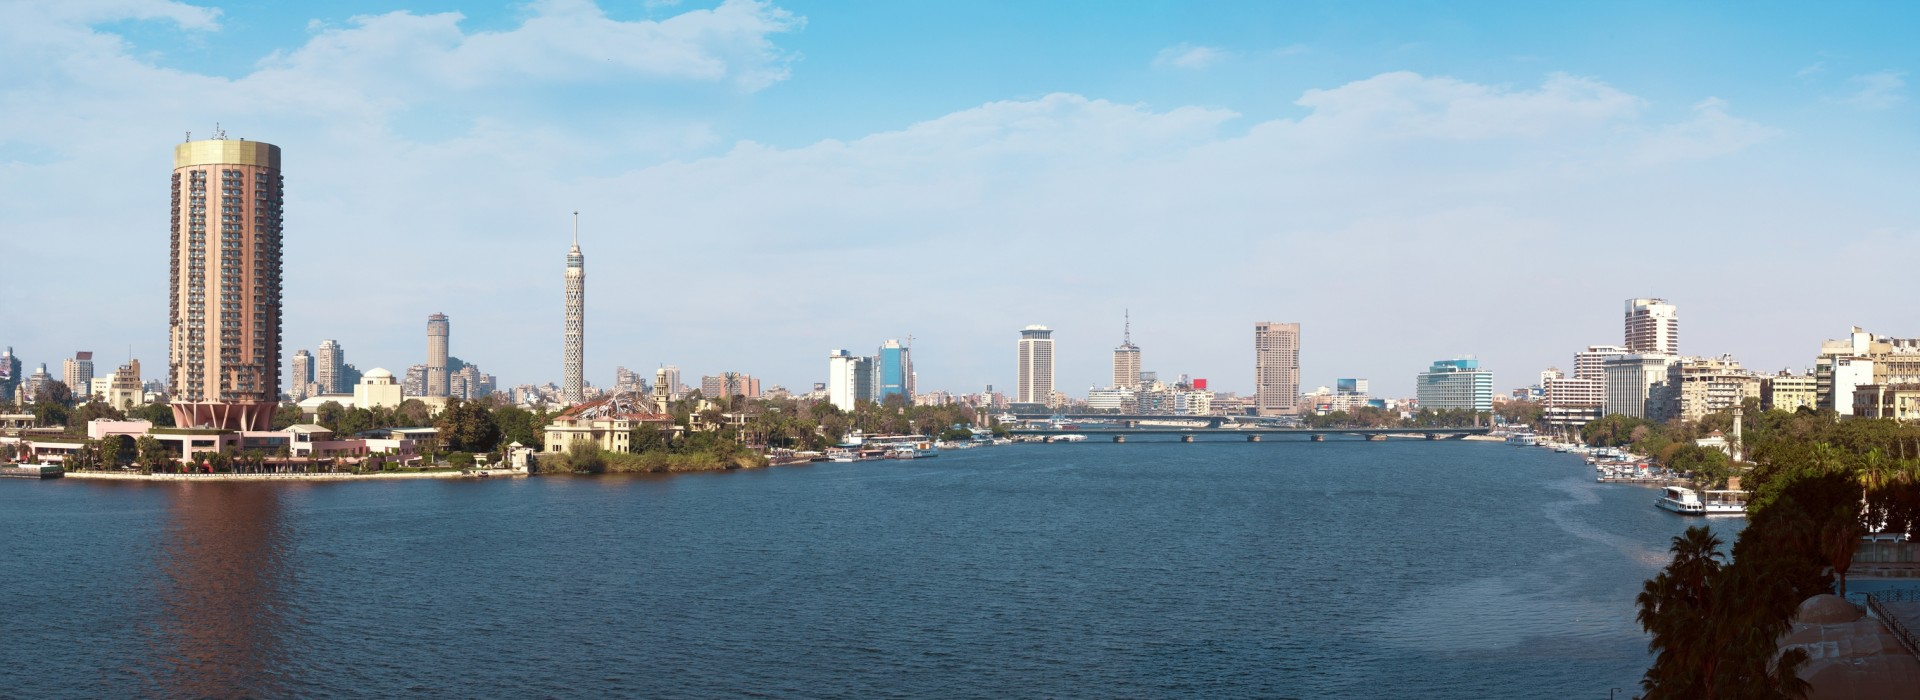 Panoramic view of Cairo City